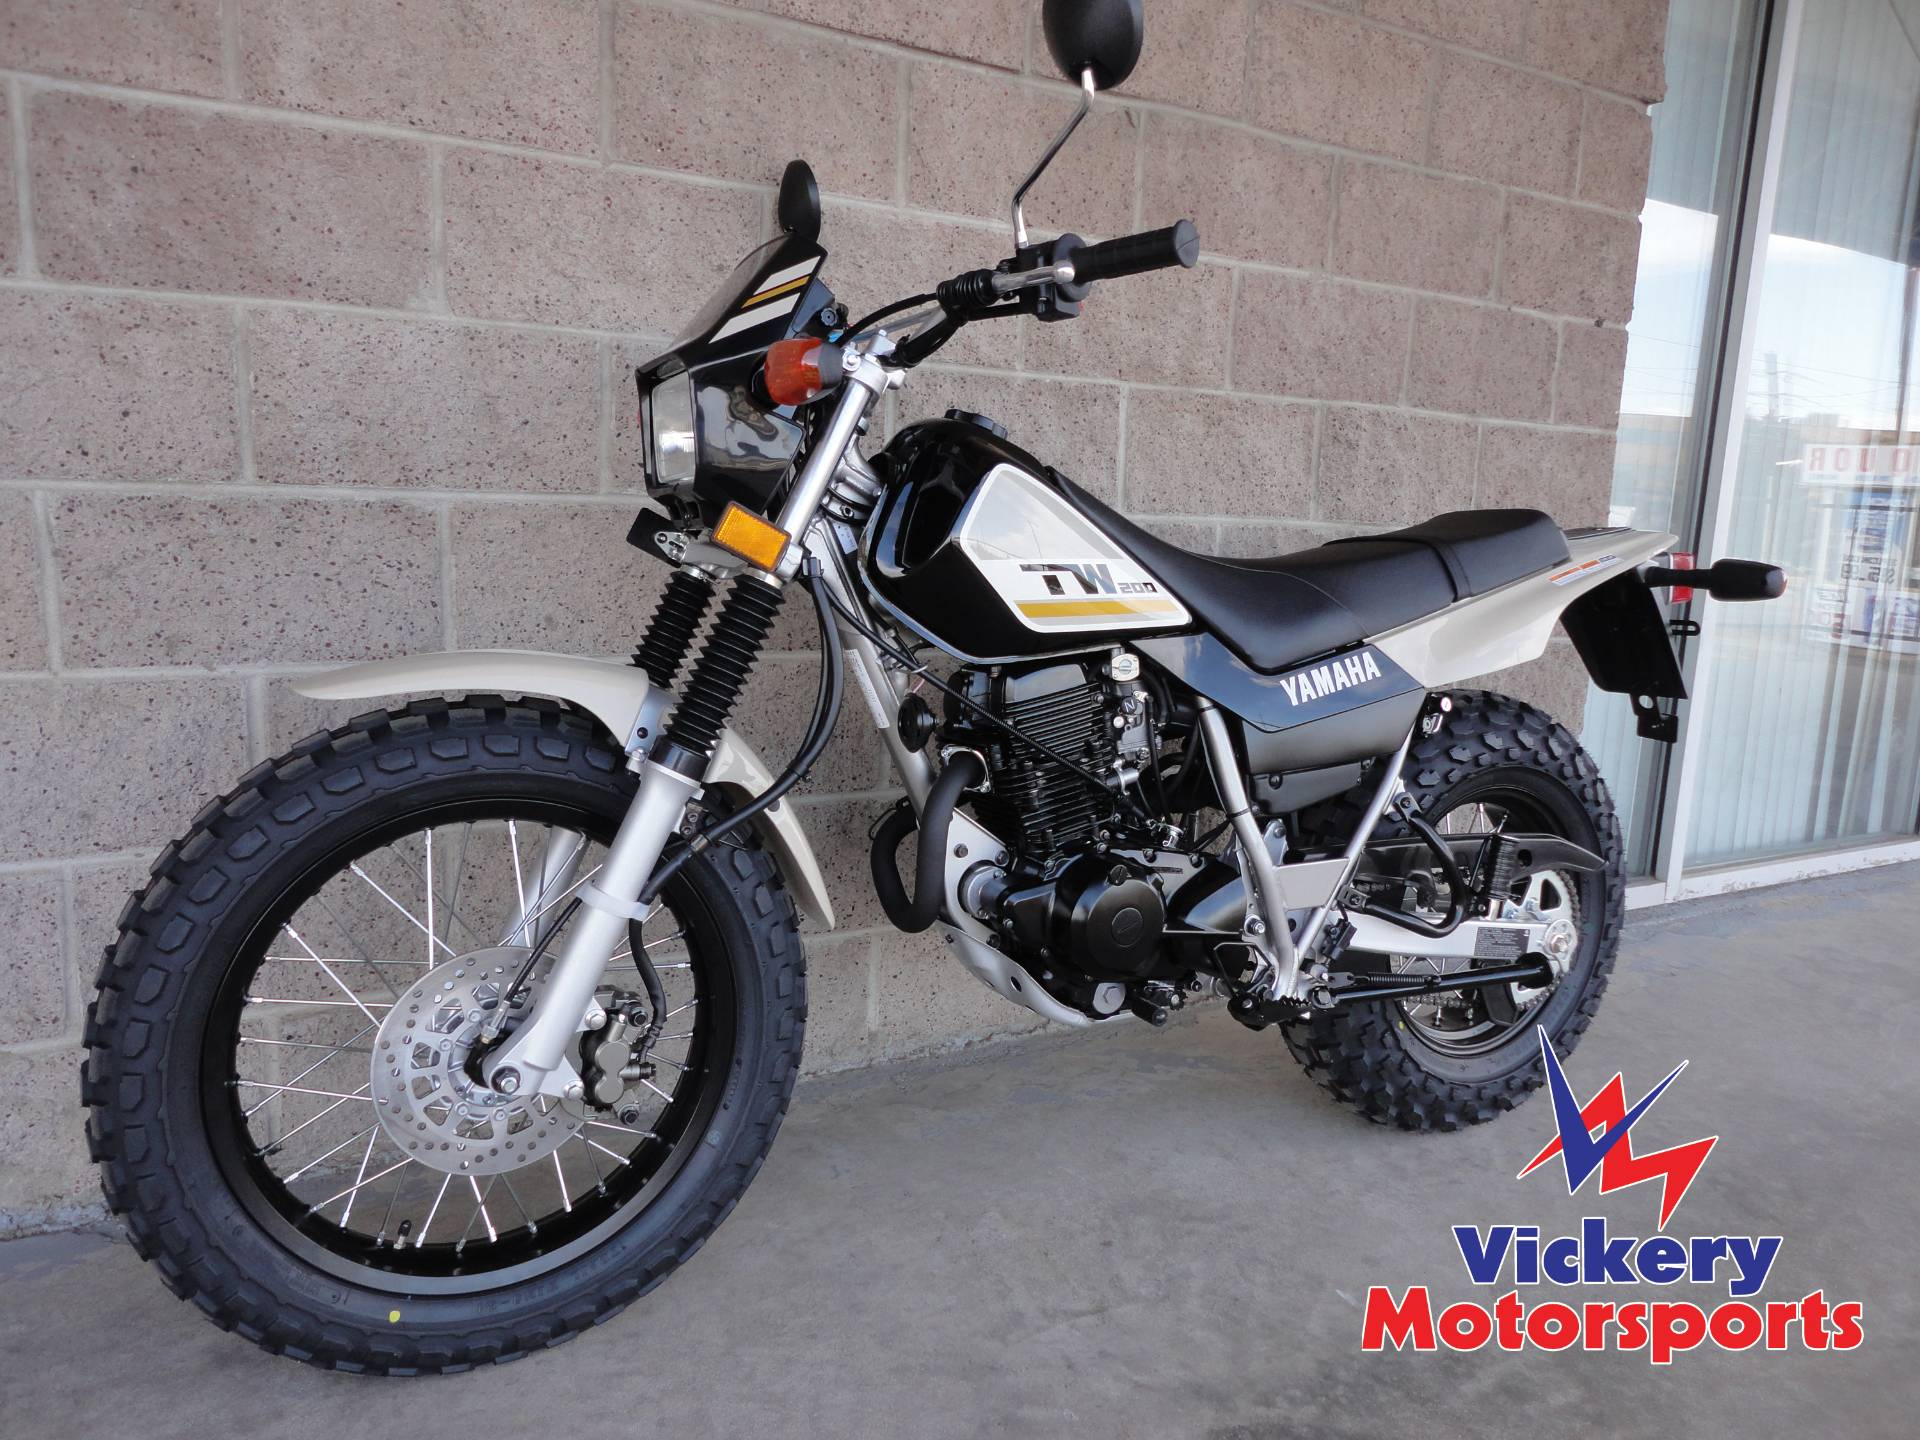 2020 Yamaha TW200 in Denver, Colorado - Photo 1